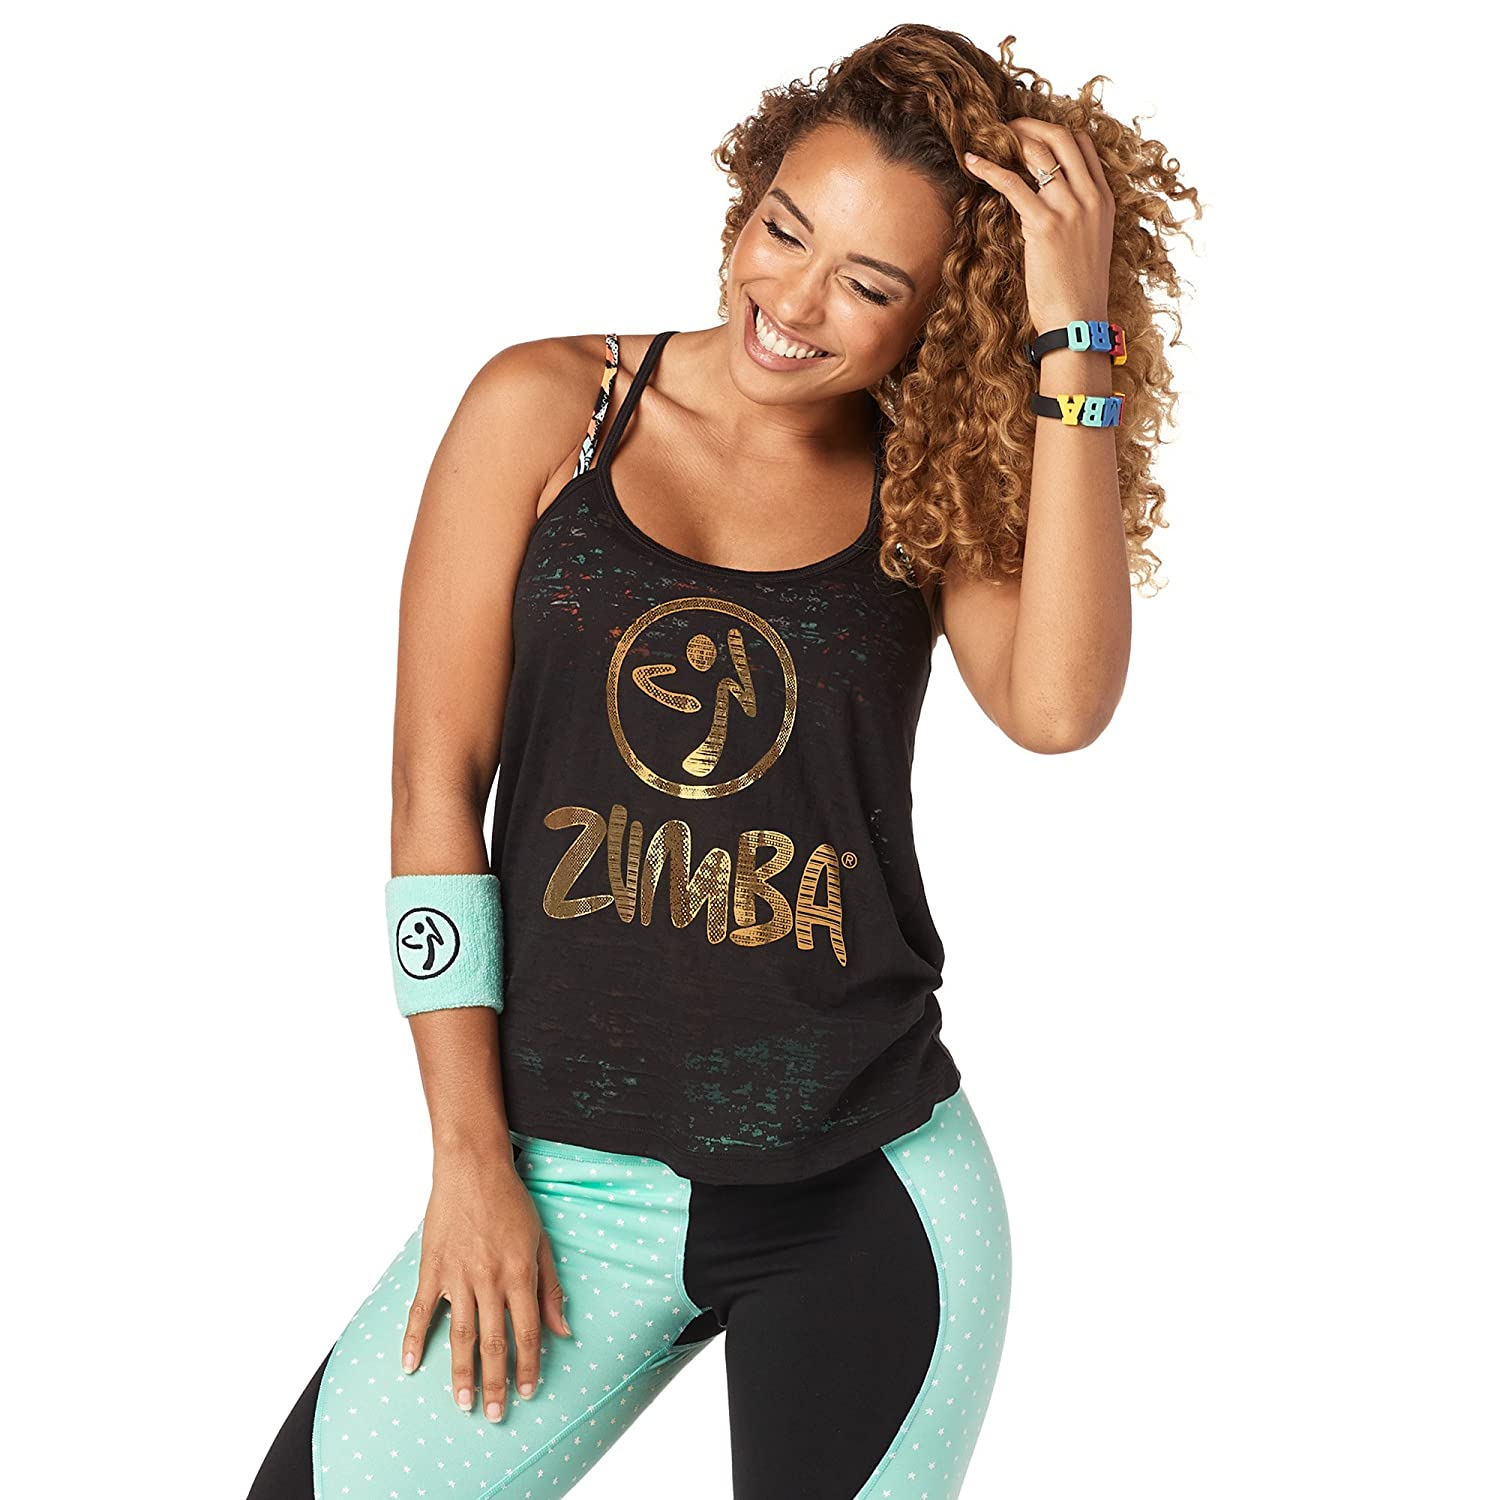 Zumba Backless Dance Fitness Womens Tops Breathable Open Back Bold Front Graphic Print Loose Fit Exercise Workout Tank Tops for Women